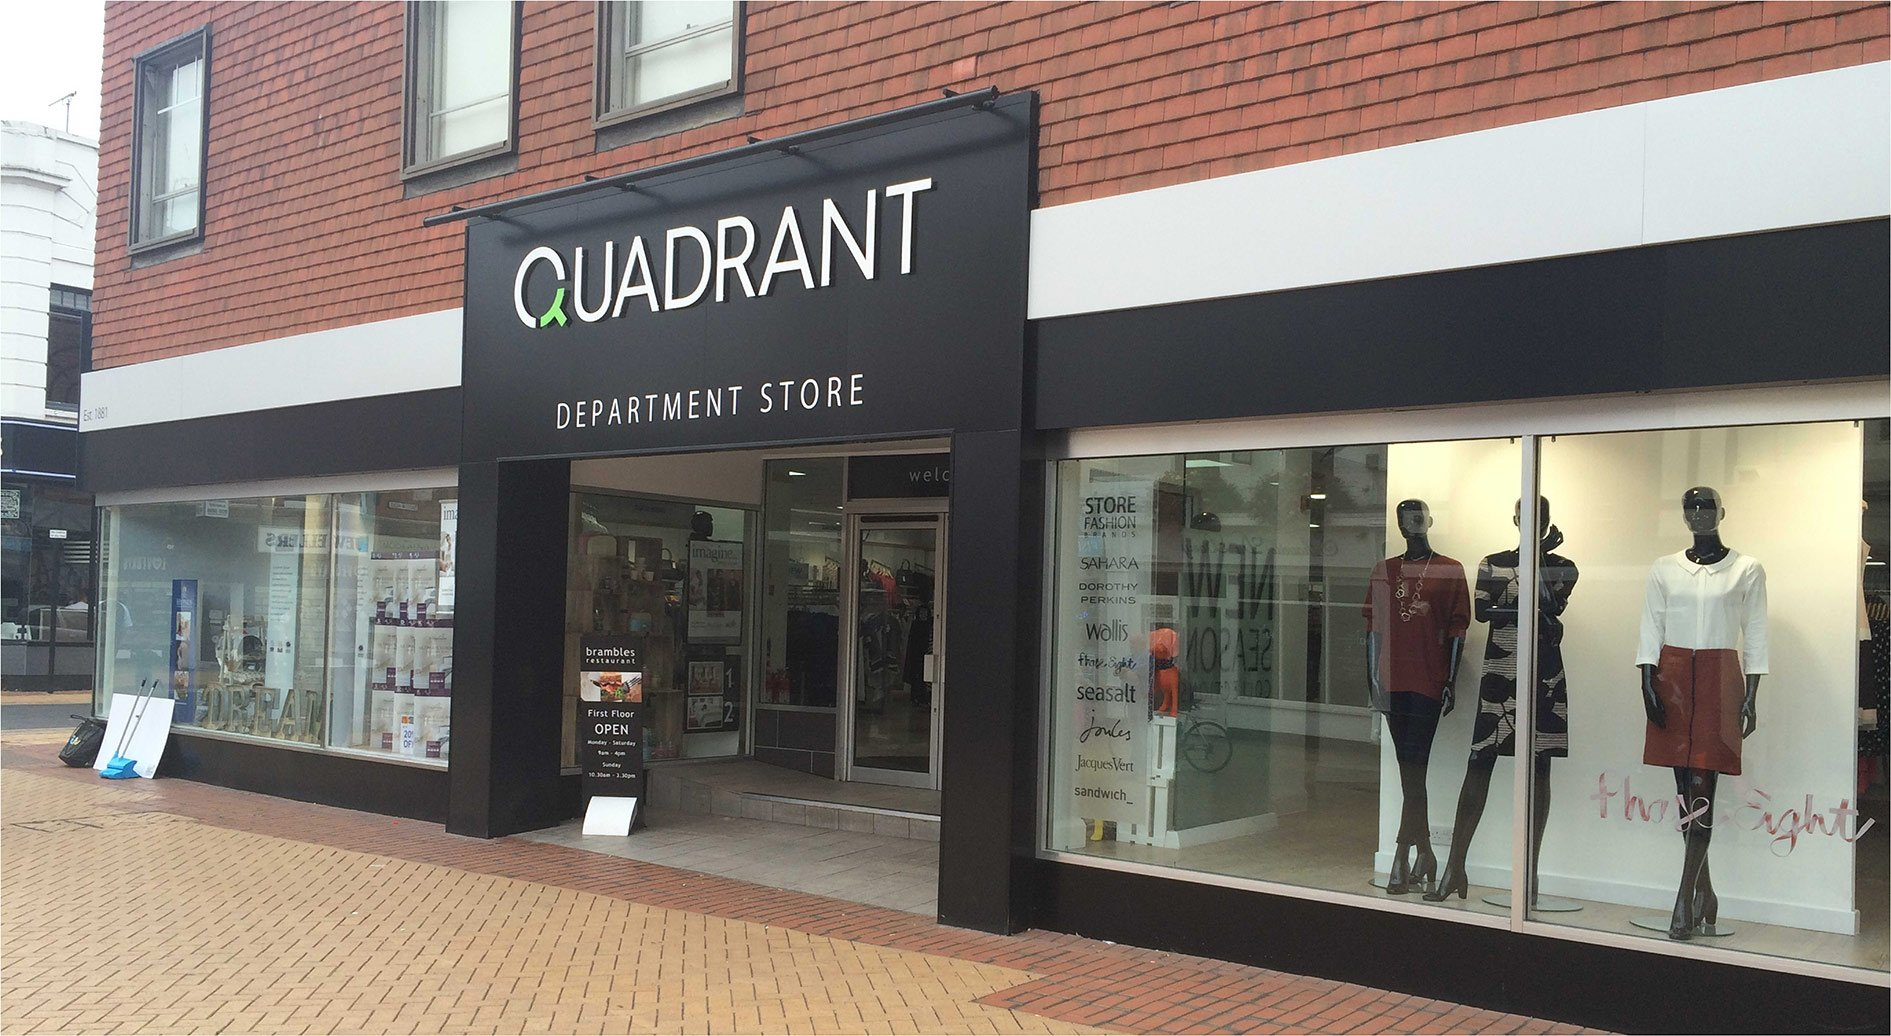 Quadrant Department Store Signage - Sign Printing and Installation by Envirosigns Ltd